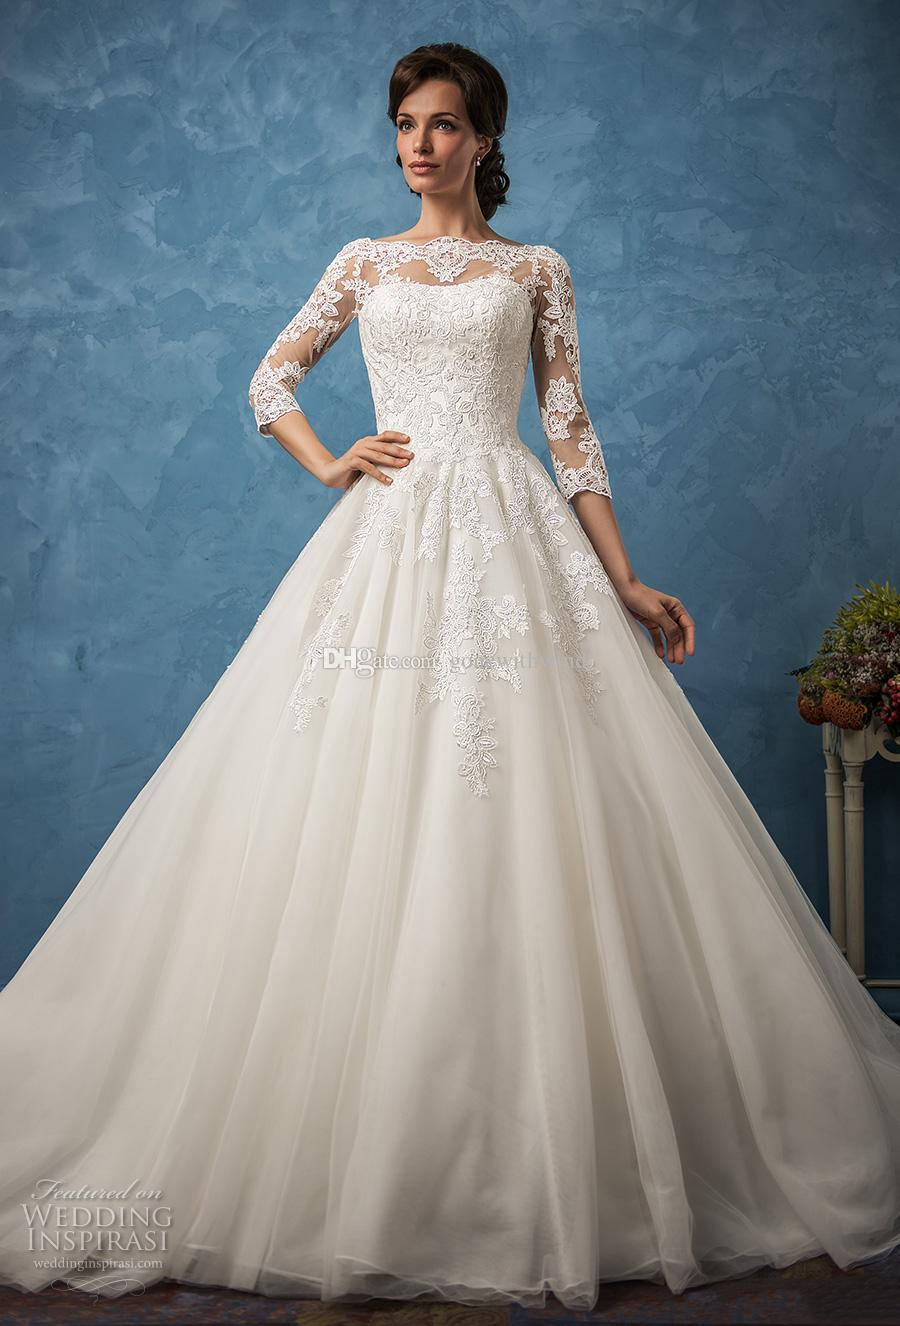 ball gown vintage wedding dresses 2017 amelia sposa bridal 3/4